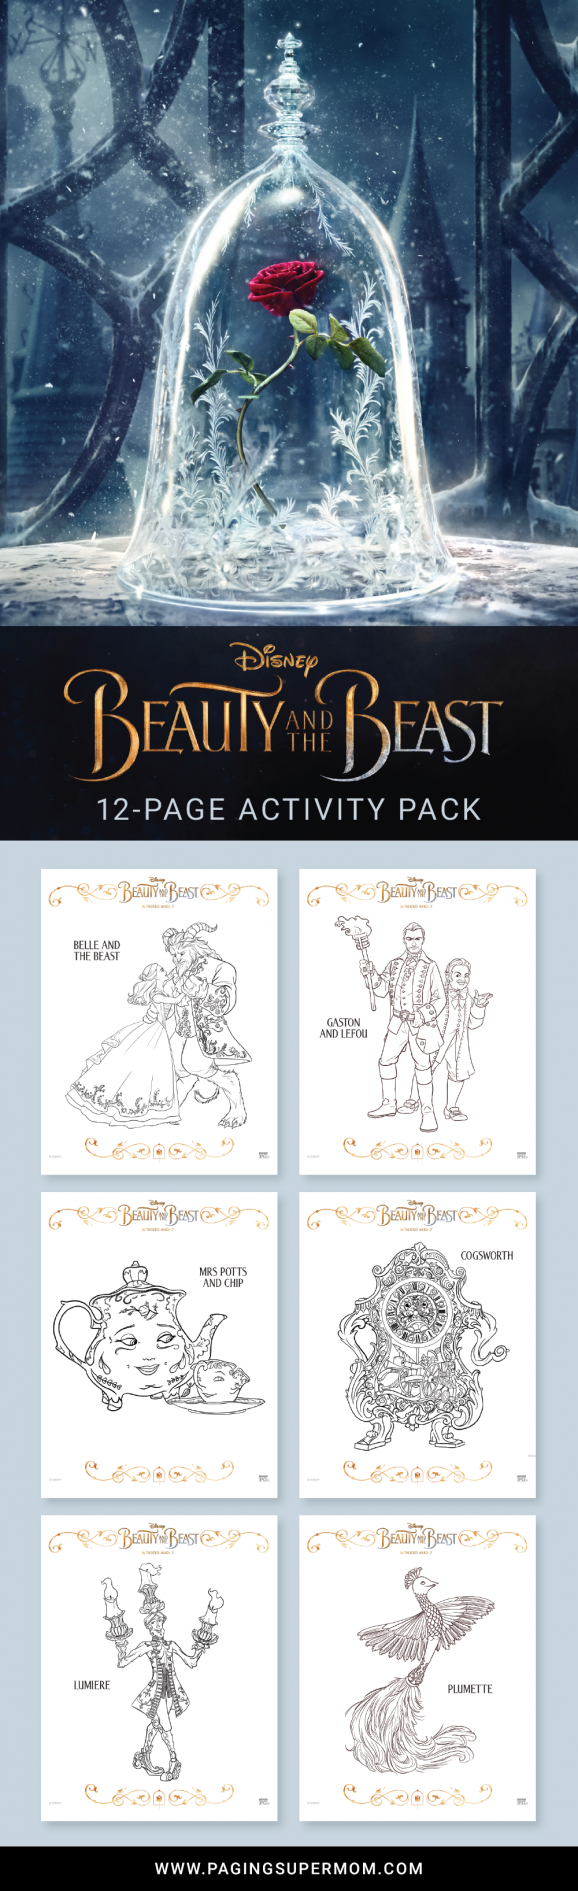 Free Printable Beauty And The Beast Coloring Pages Other Fun Activities Including A Full